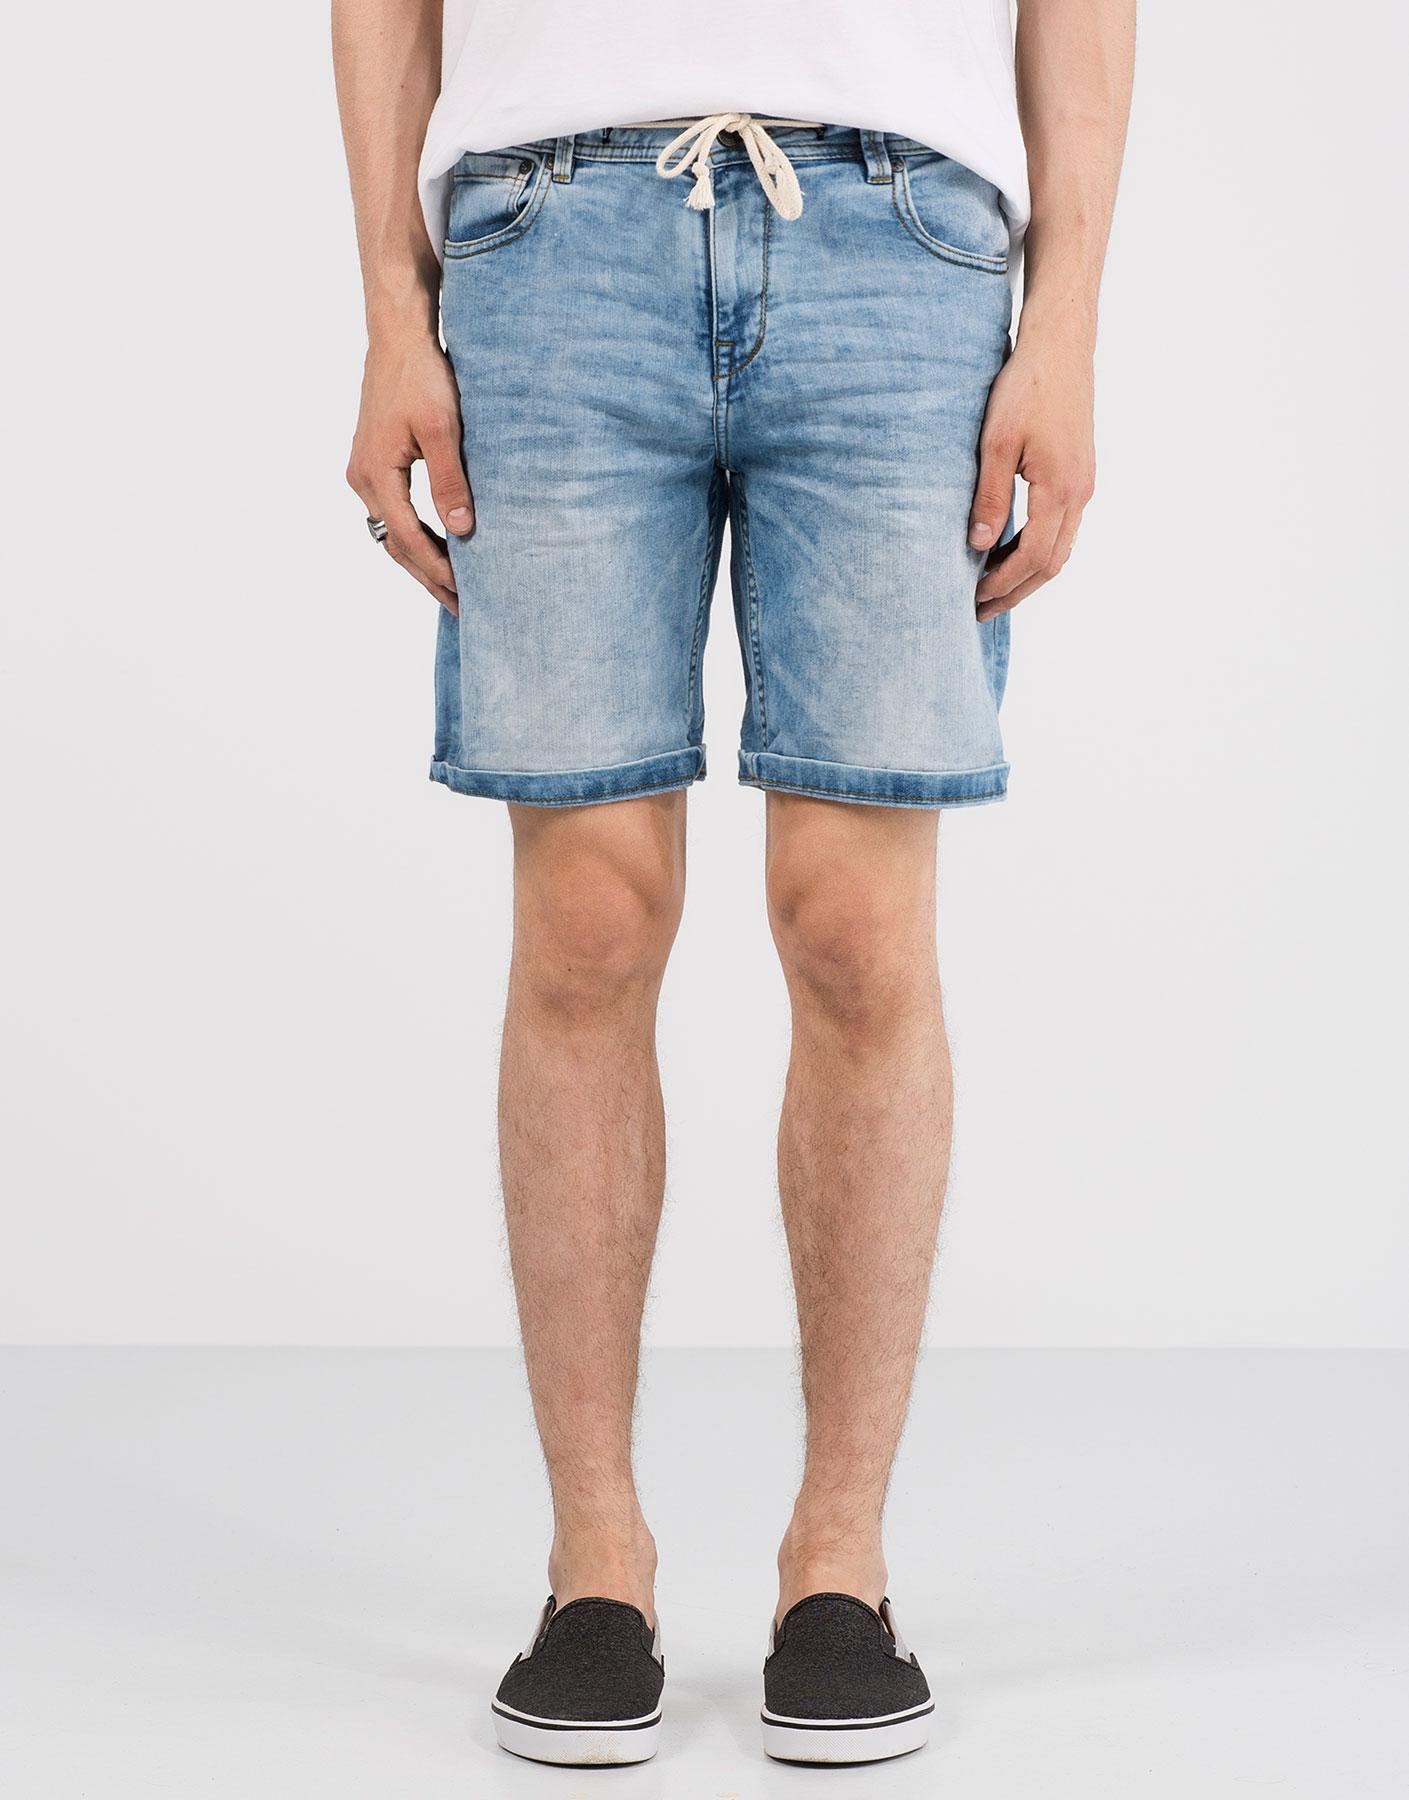 Light random bermuda shorts with drawstring